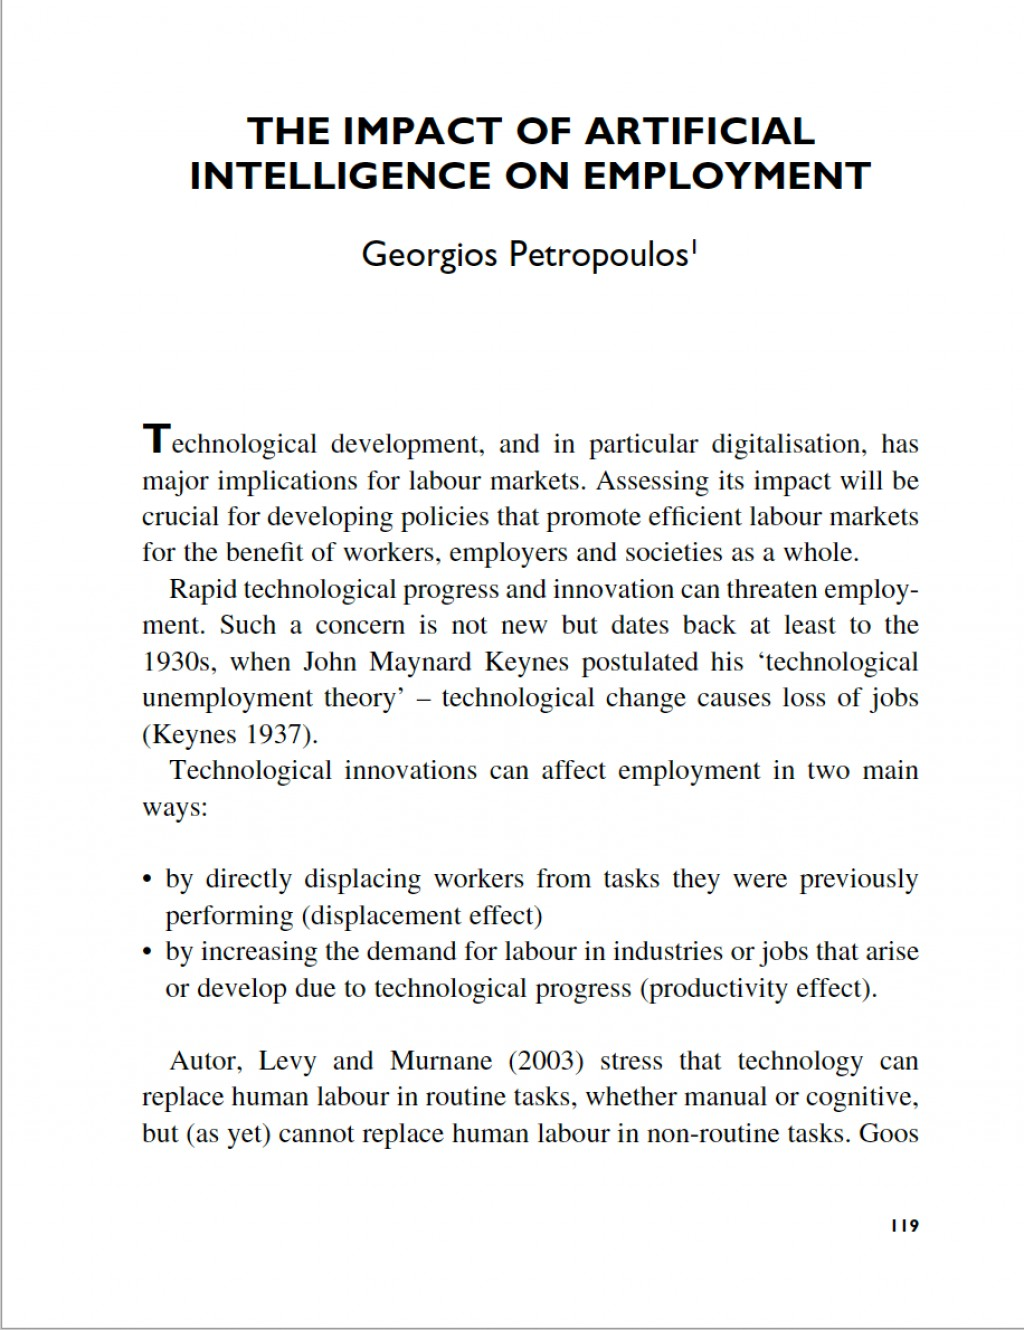 005 Screen Shot At Artificial Intelligence Research Sensational Paper 2018 Topics Pdf Large